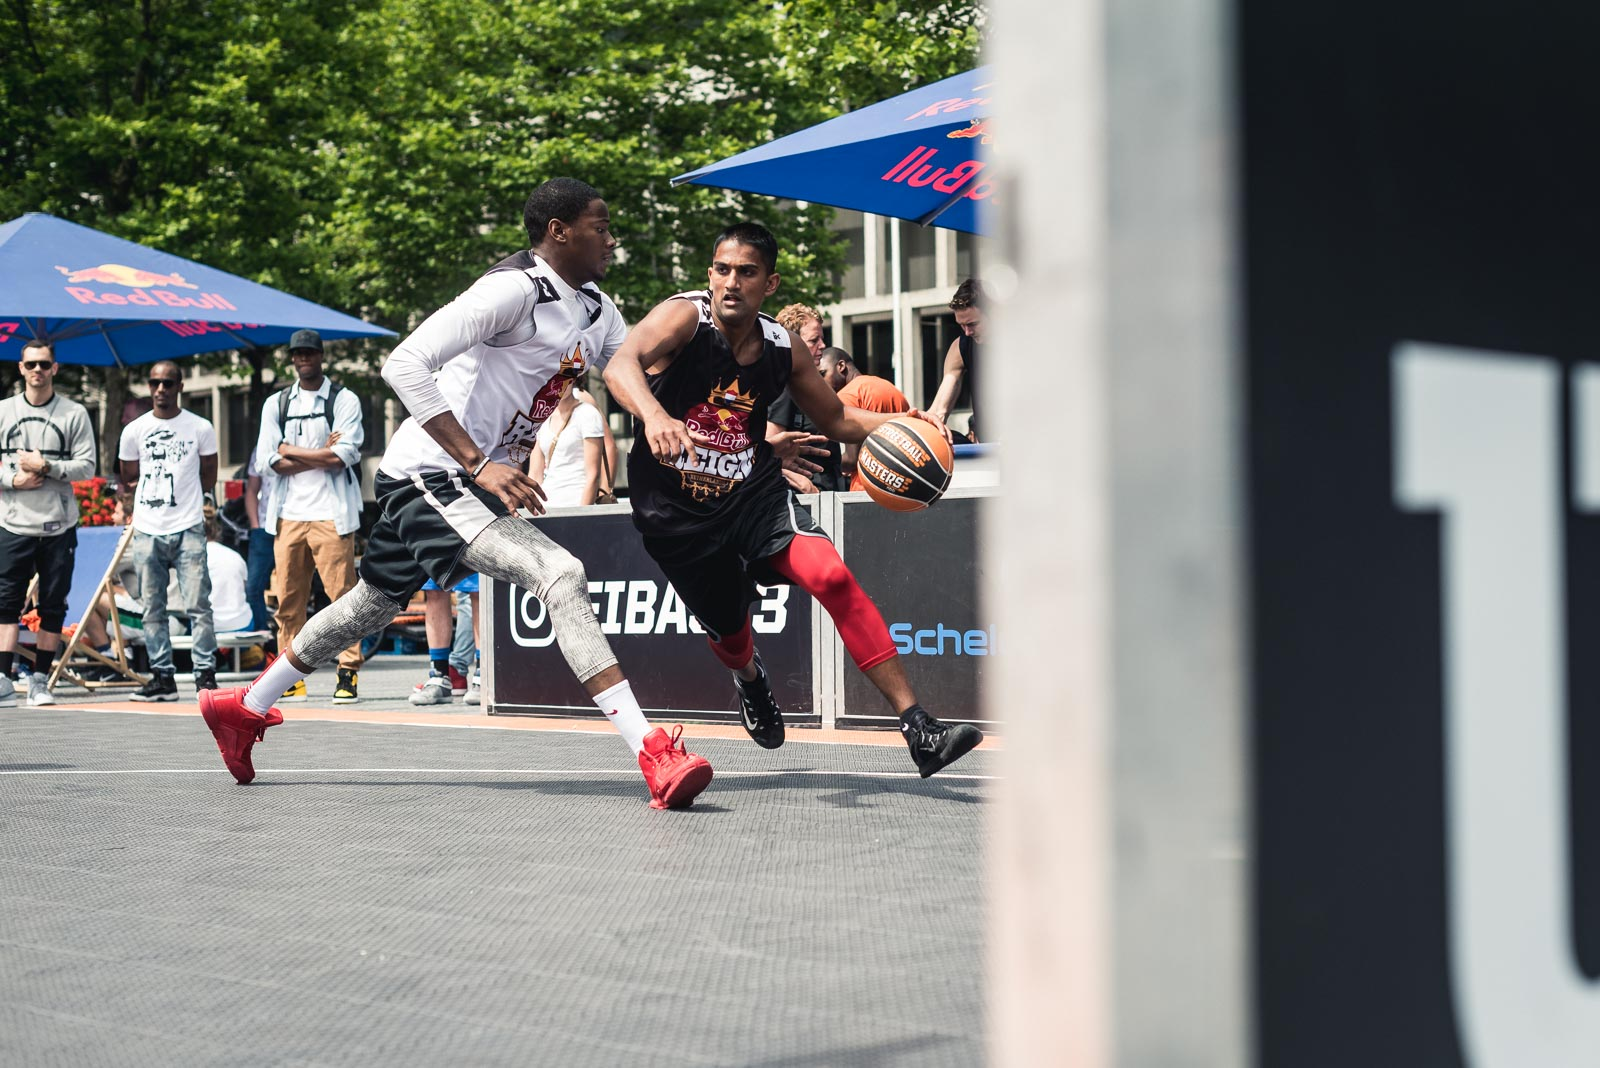 Action photo shot during Red Bull Reign in Rotterdam